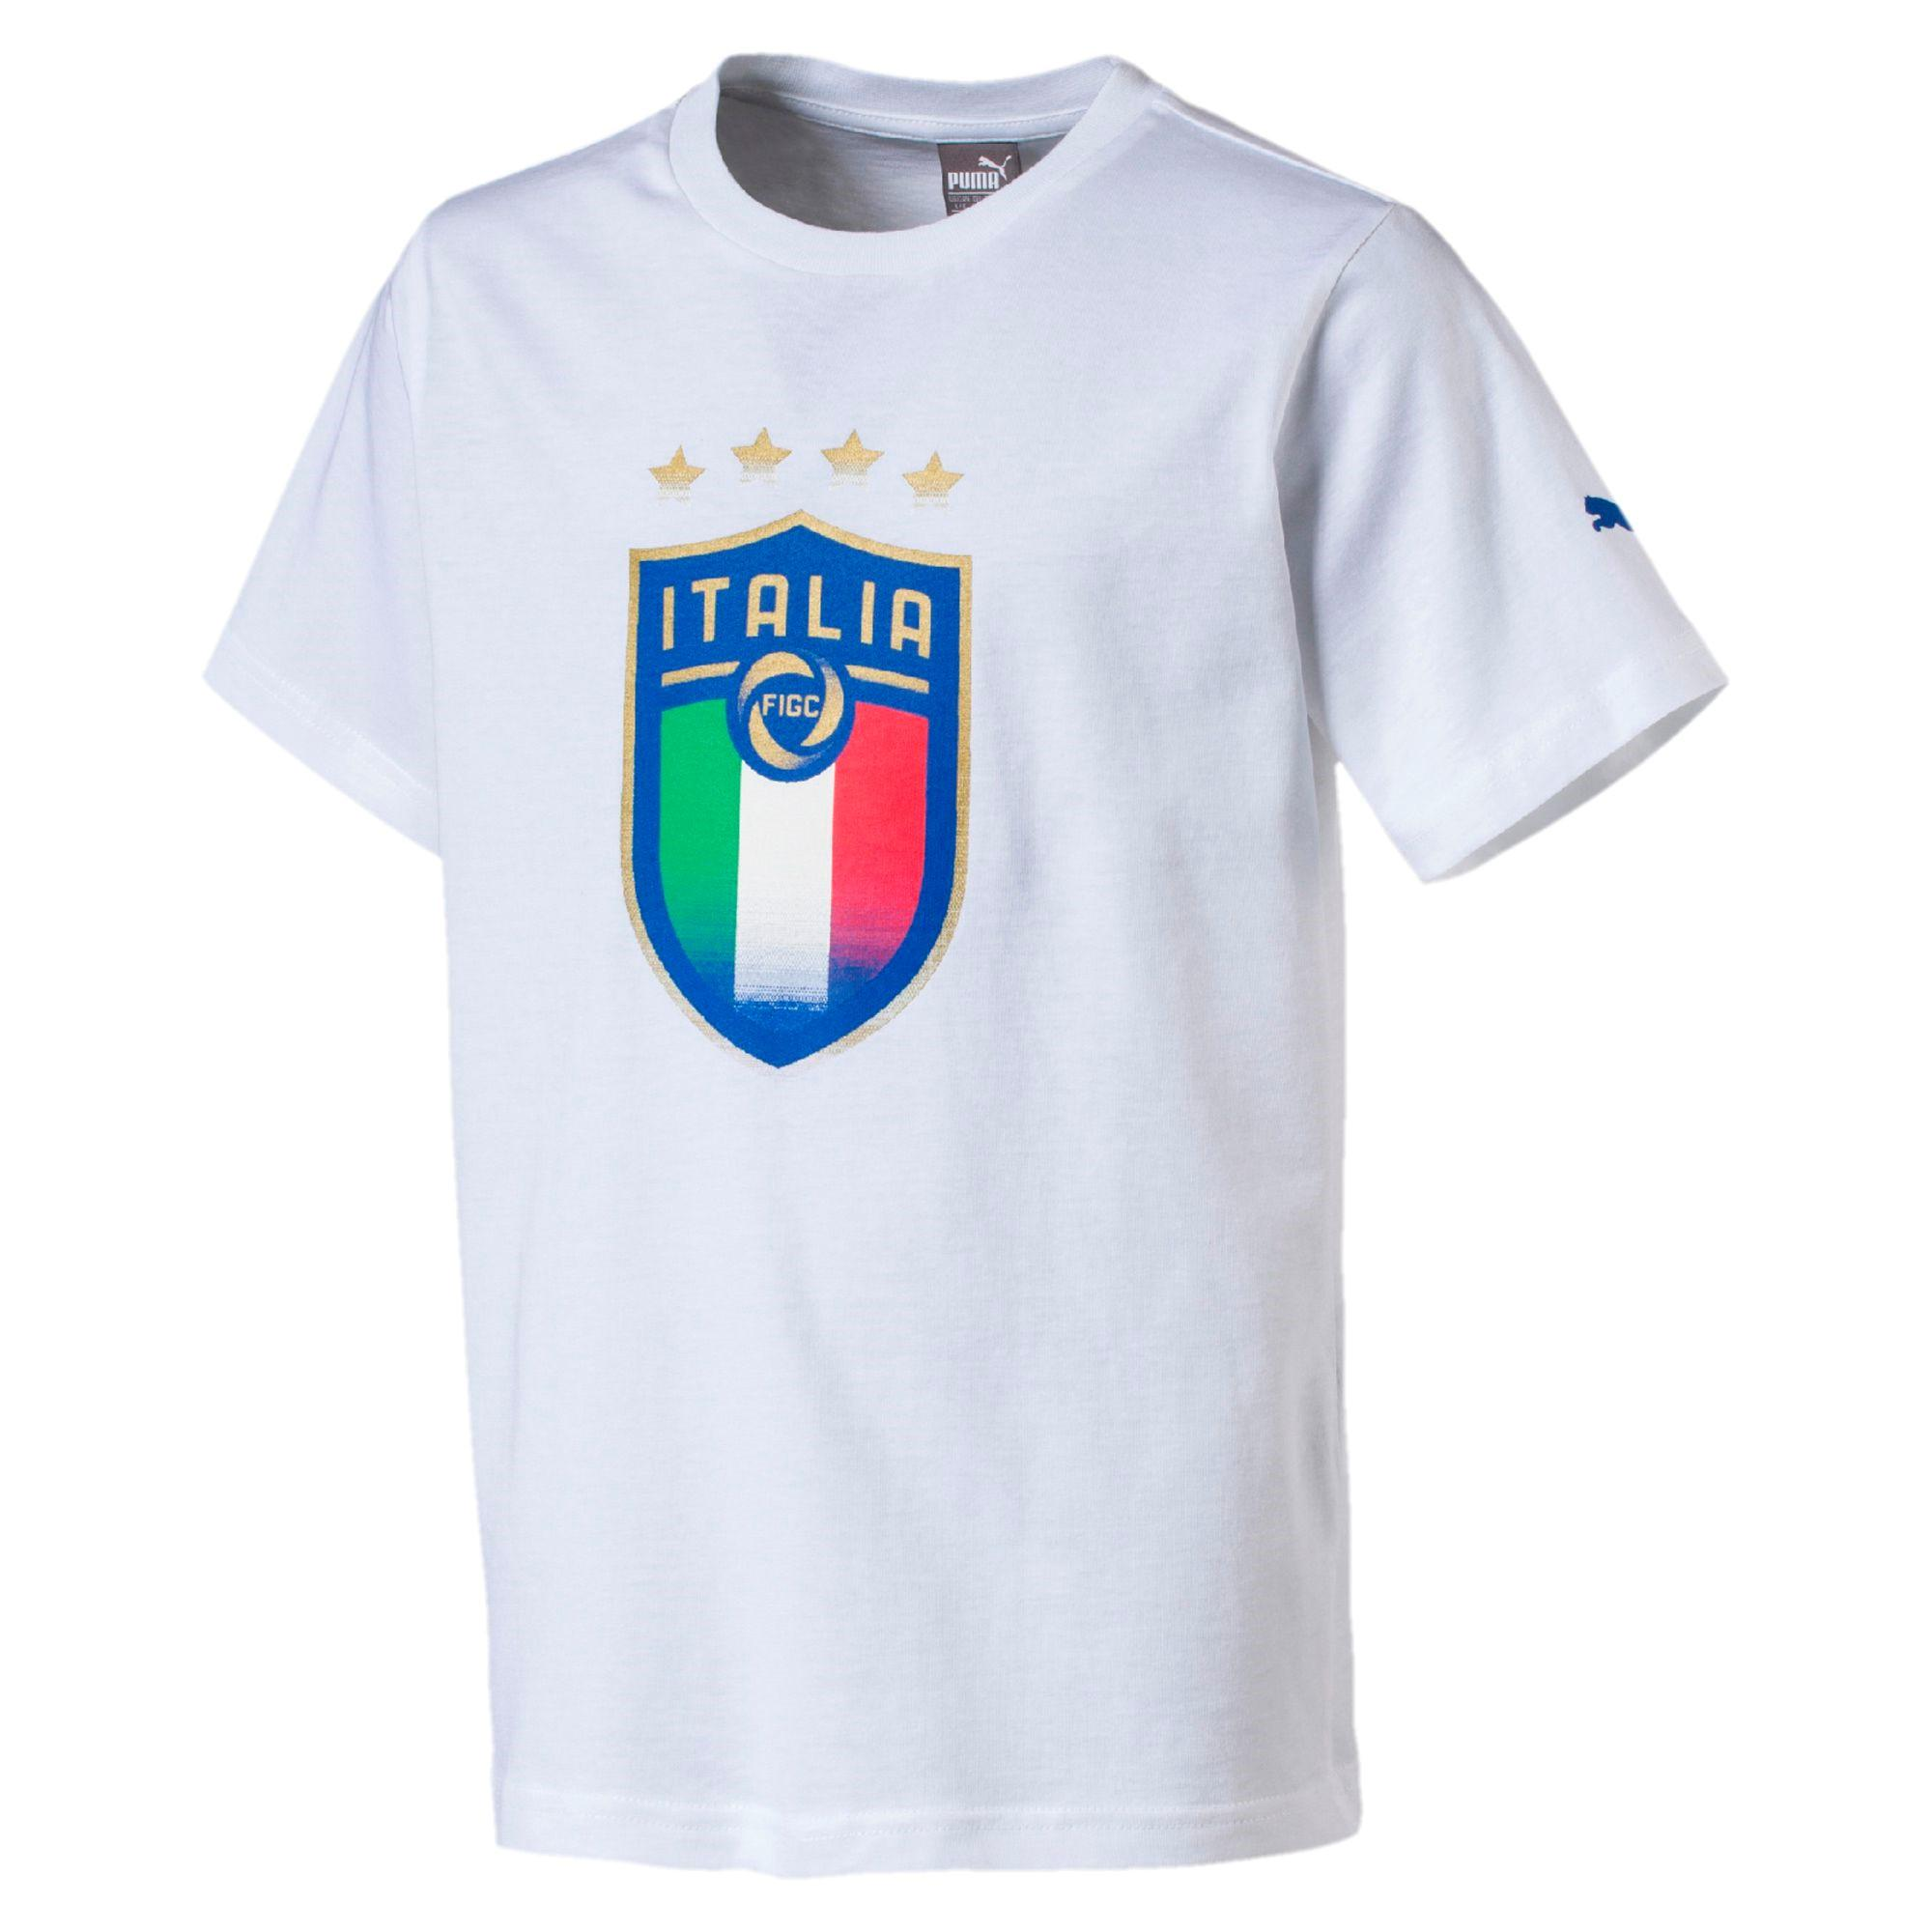 3cdbf449abc0 Puma T-shirt Figc Italia Badge Tee Italy Junior Puma White - Tifoshop.com